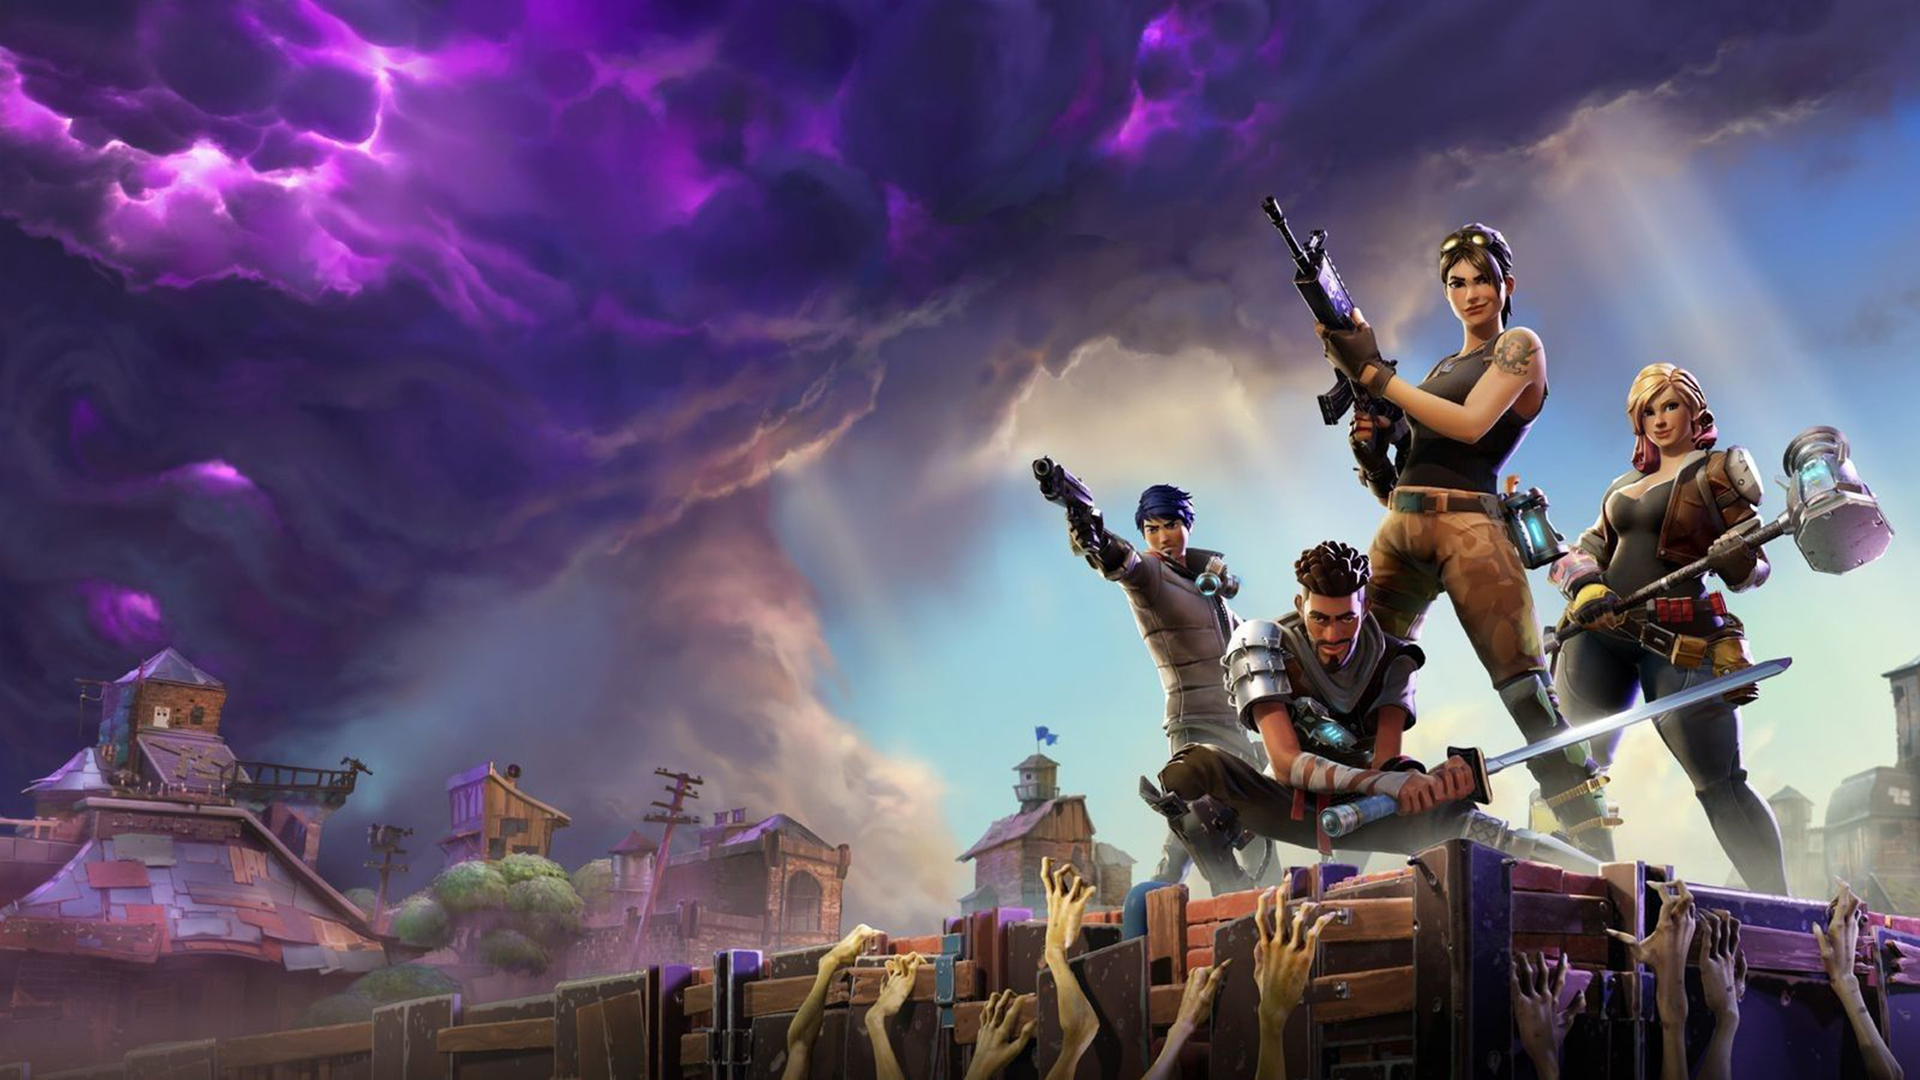 Fortnite Hd Wallpapers New Tab Theme Playtime